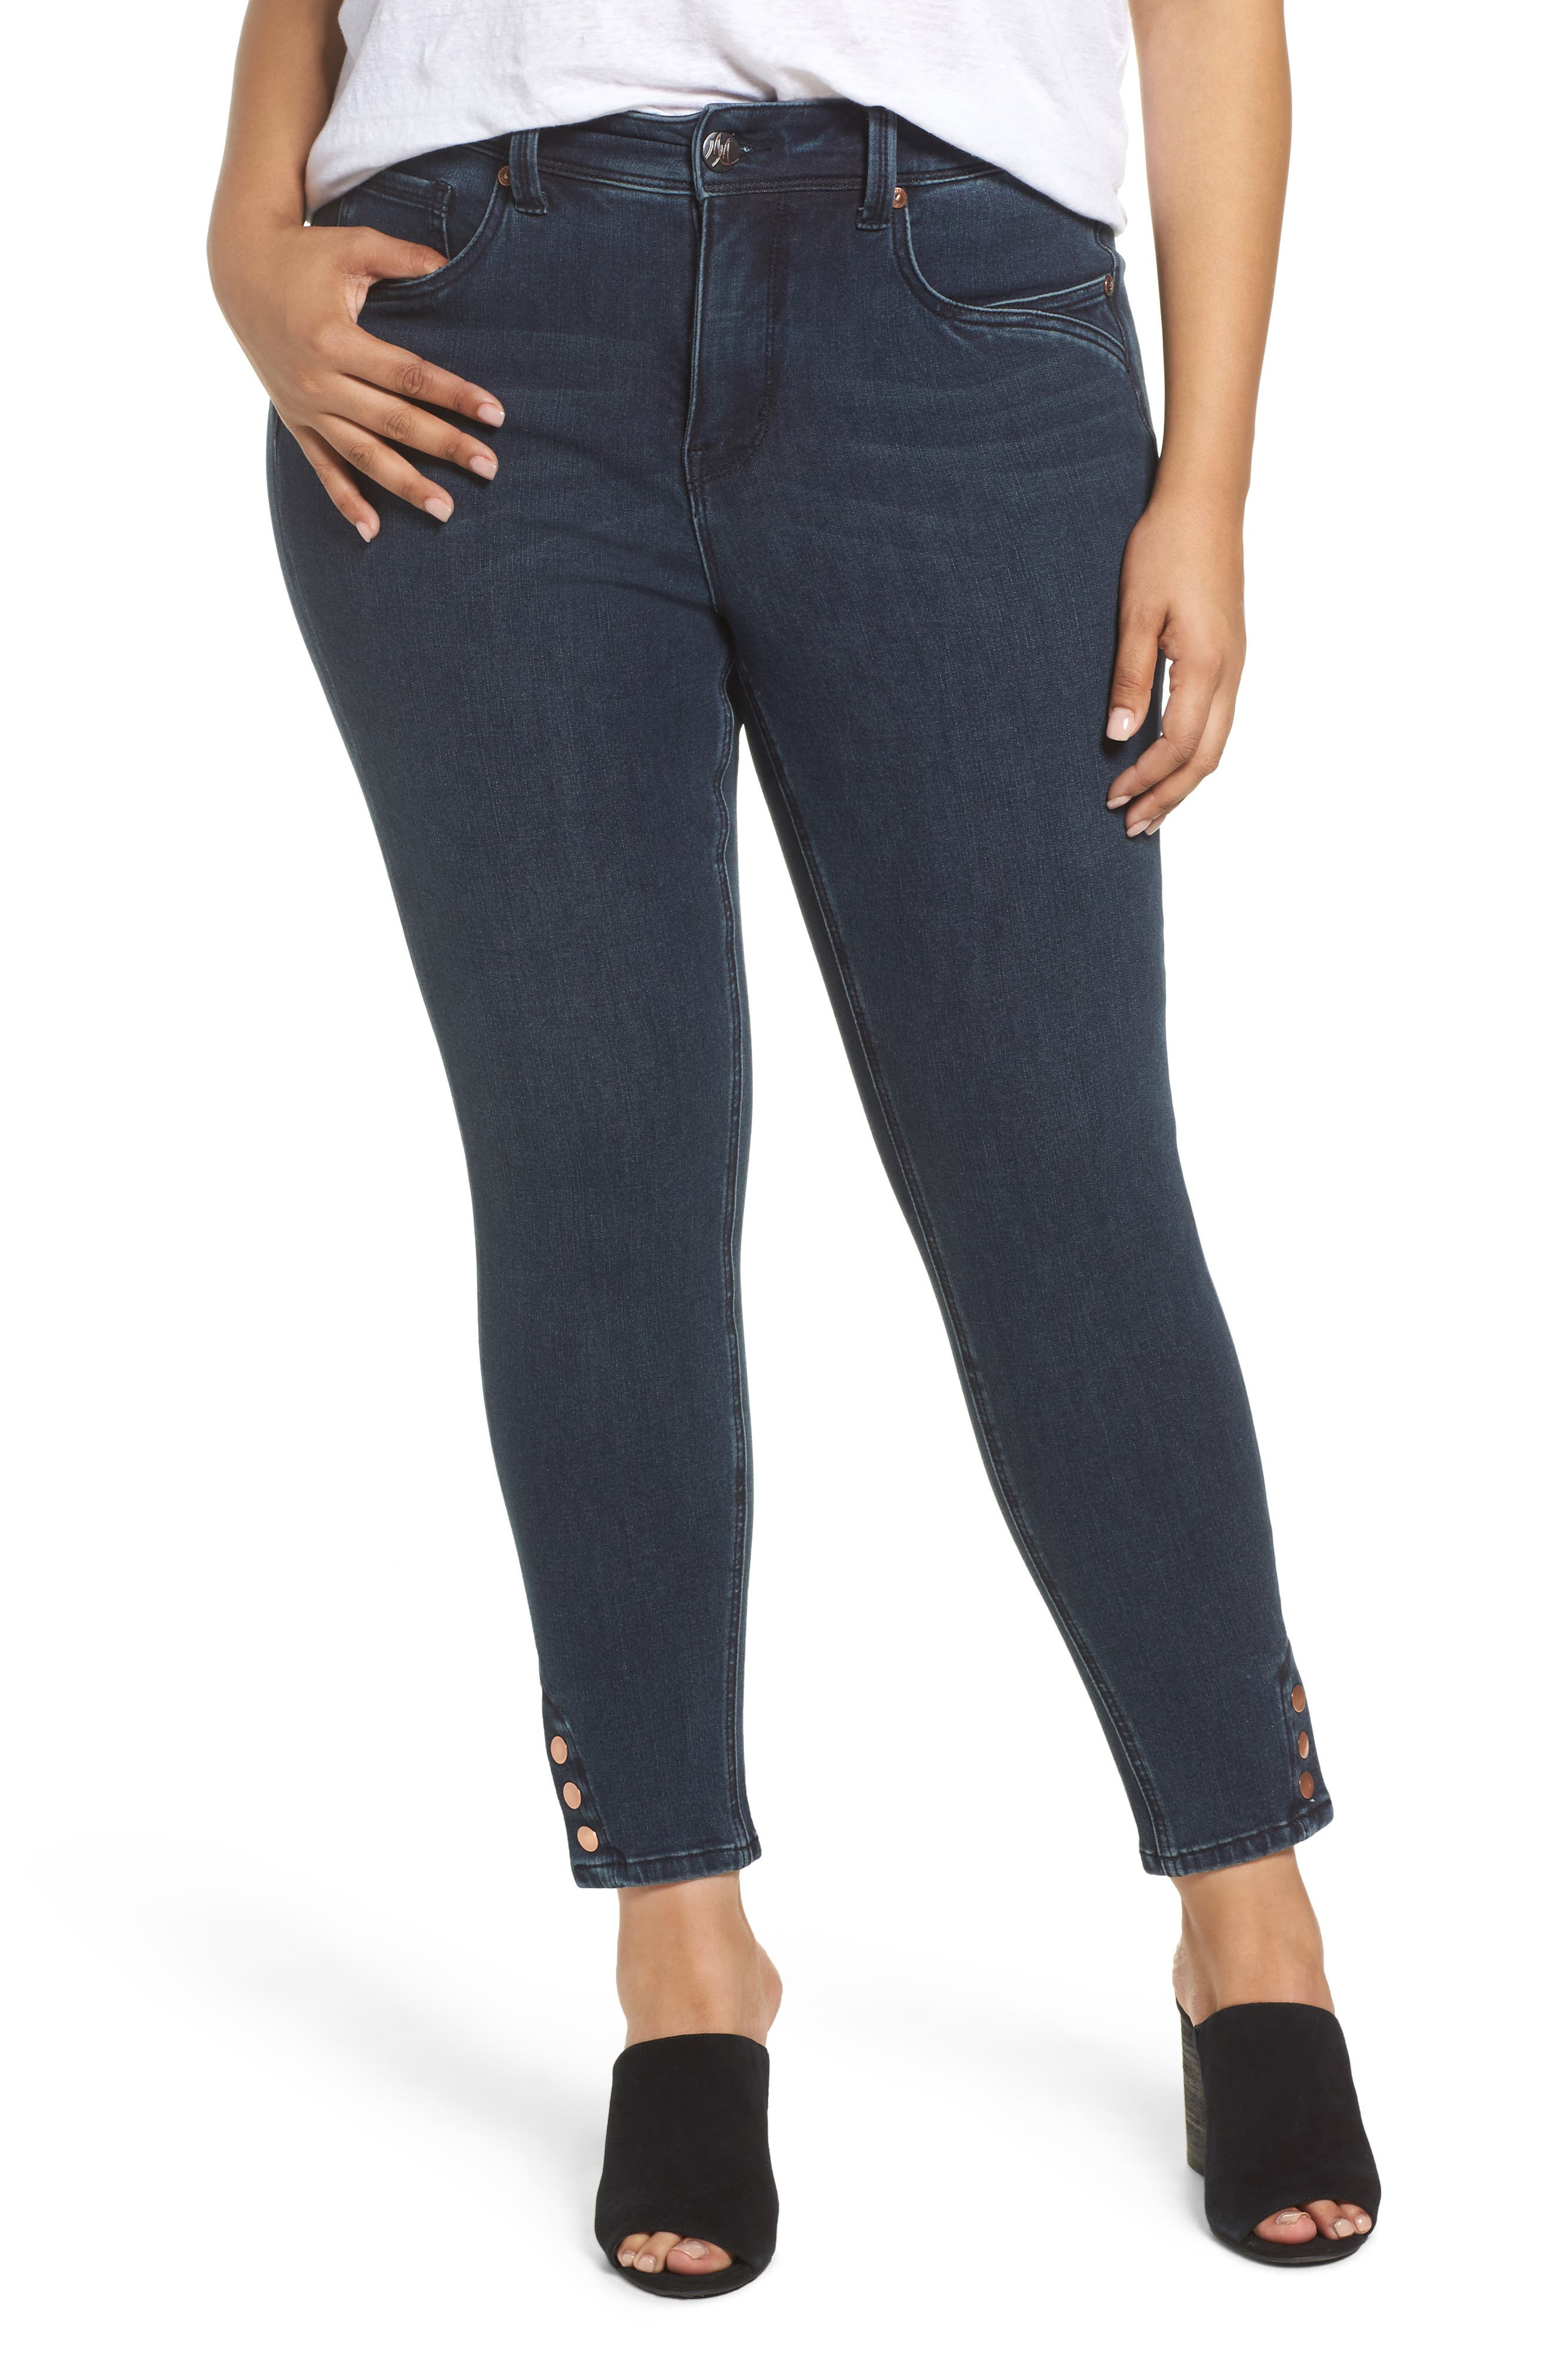 Alternate Image 1 Selected - Melissa McCarthy Seven7 Snap Hem Pencil Jeans (Sasha) (Plus Size)